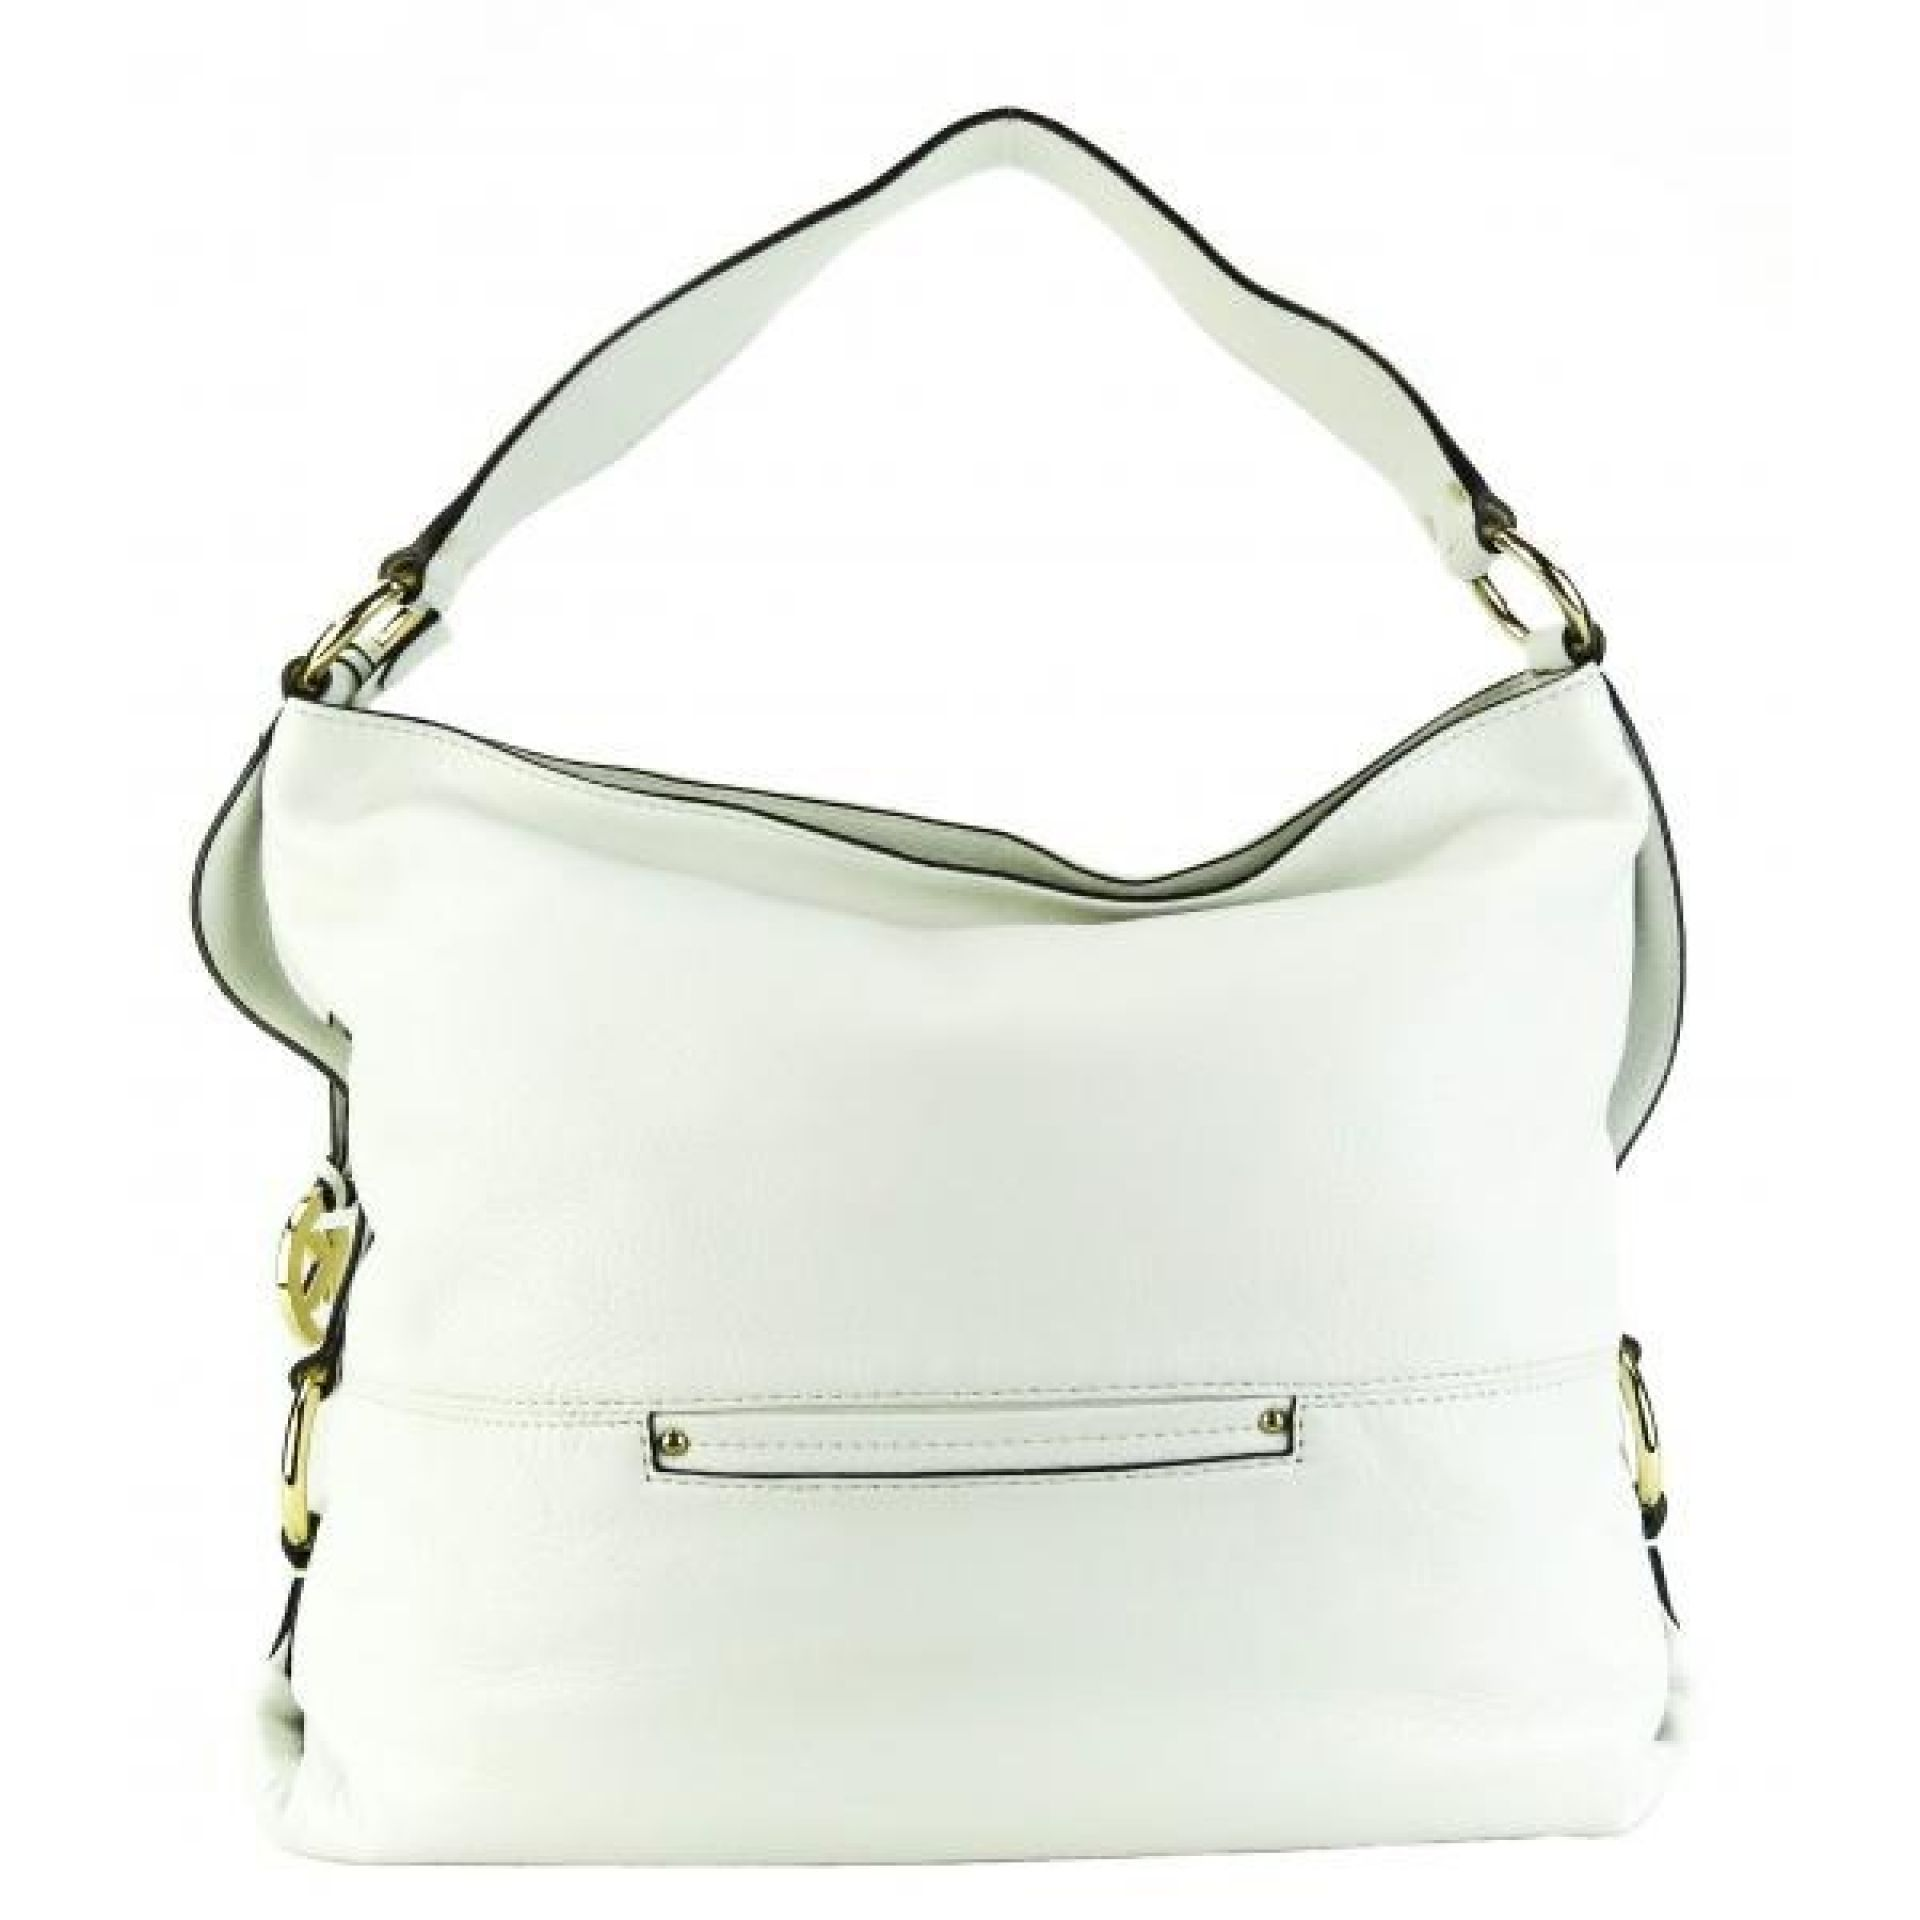 MICHAEL Michael Kors White Pebbled Leather Austin Hobo Bag